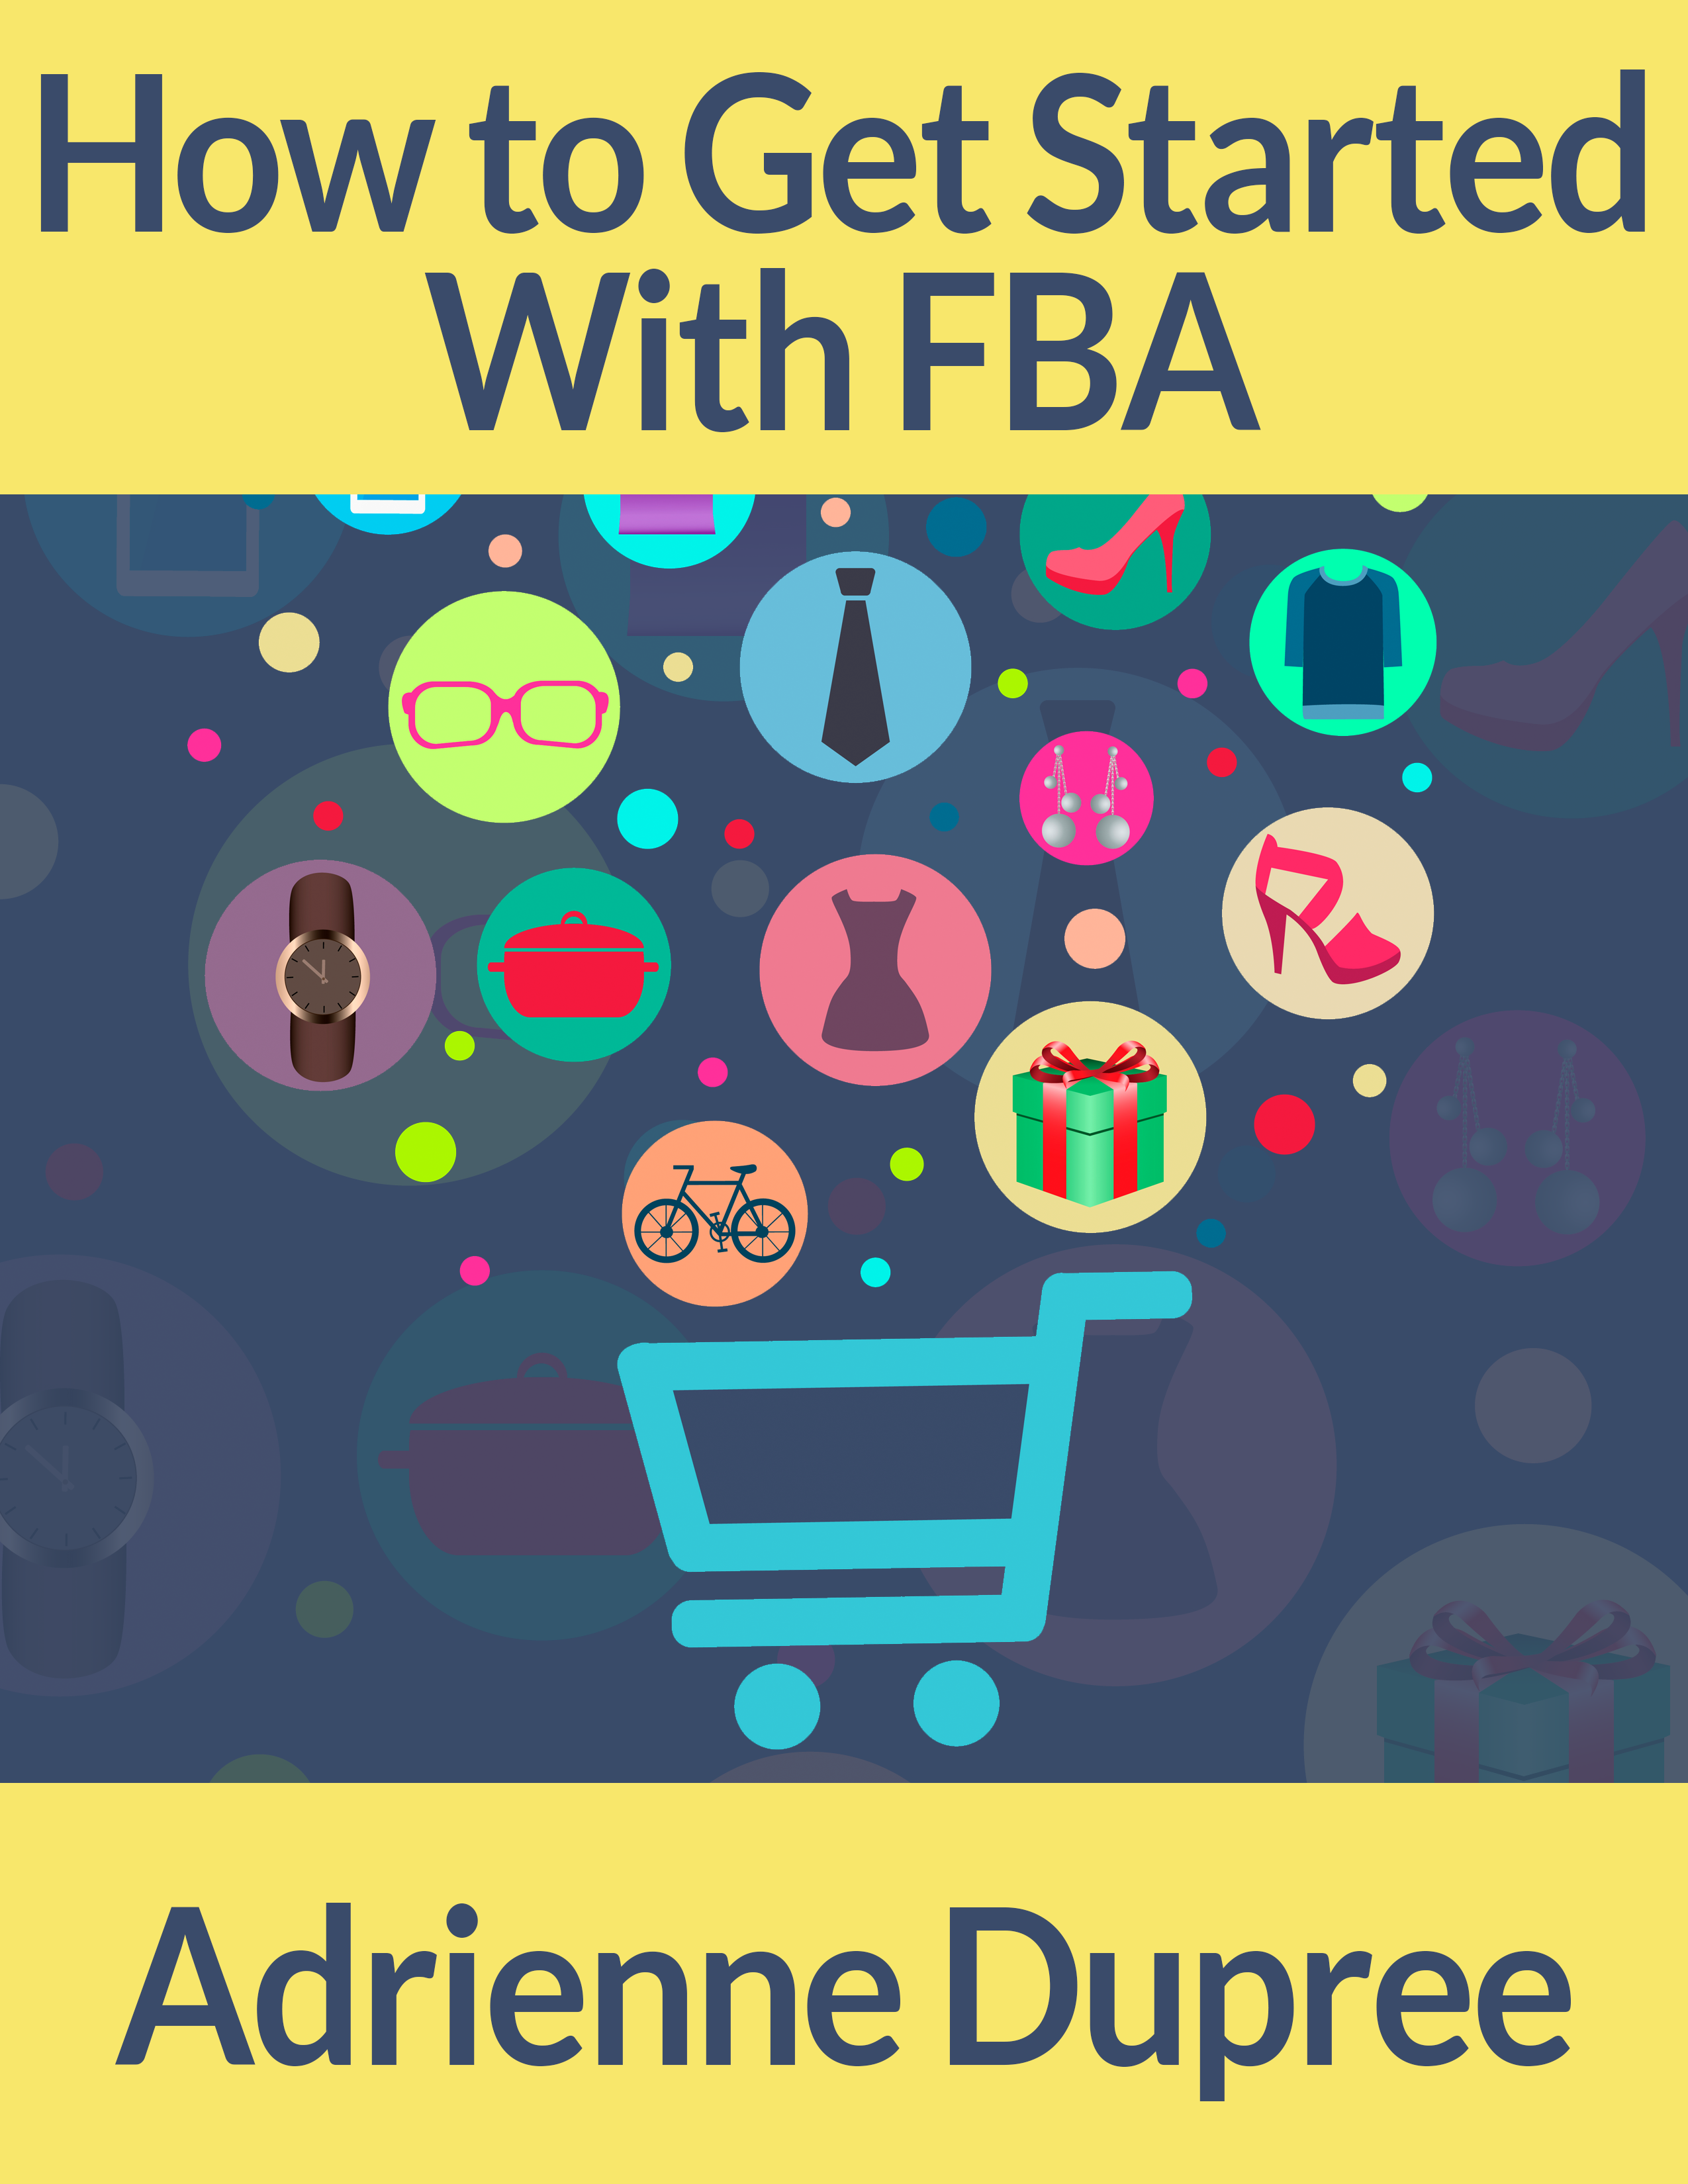 Get Started With FBA Now